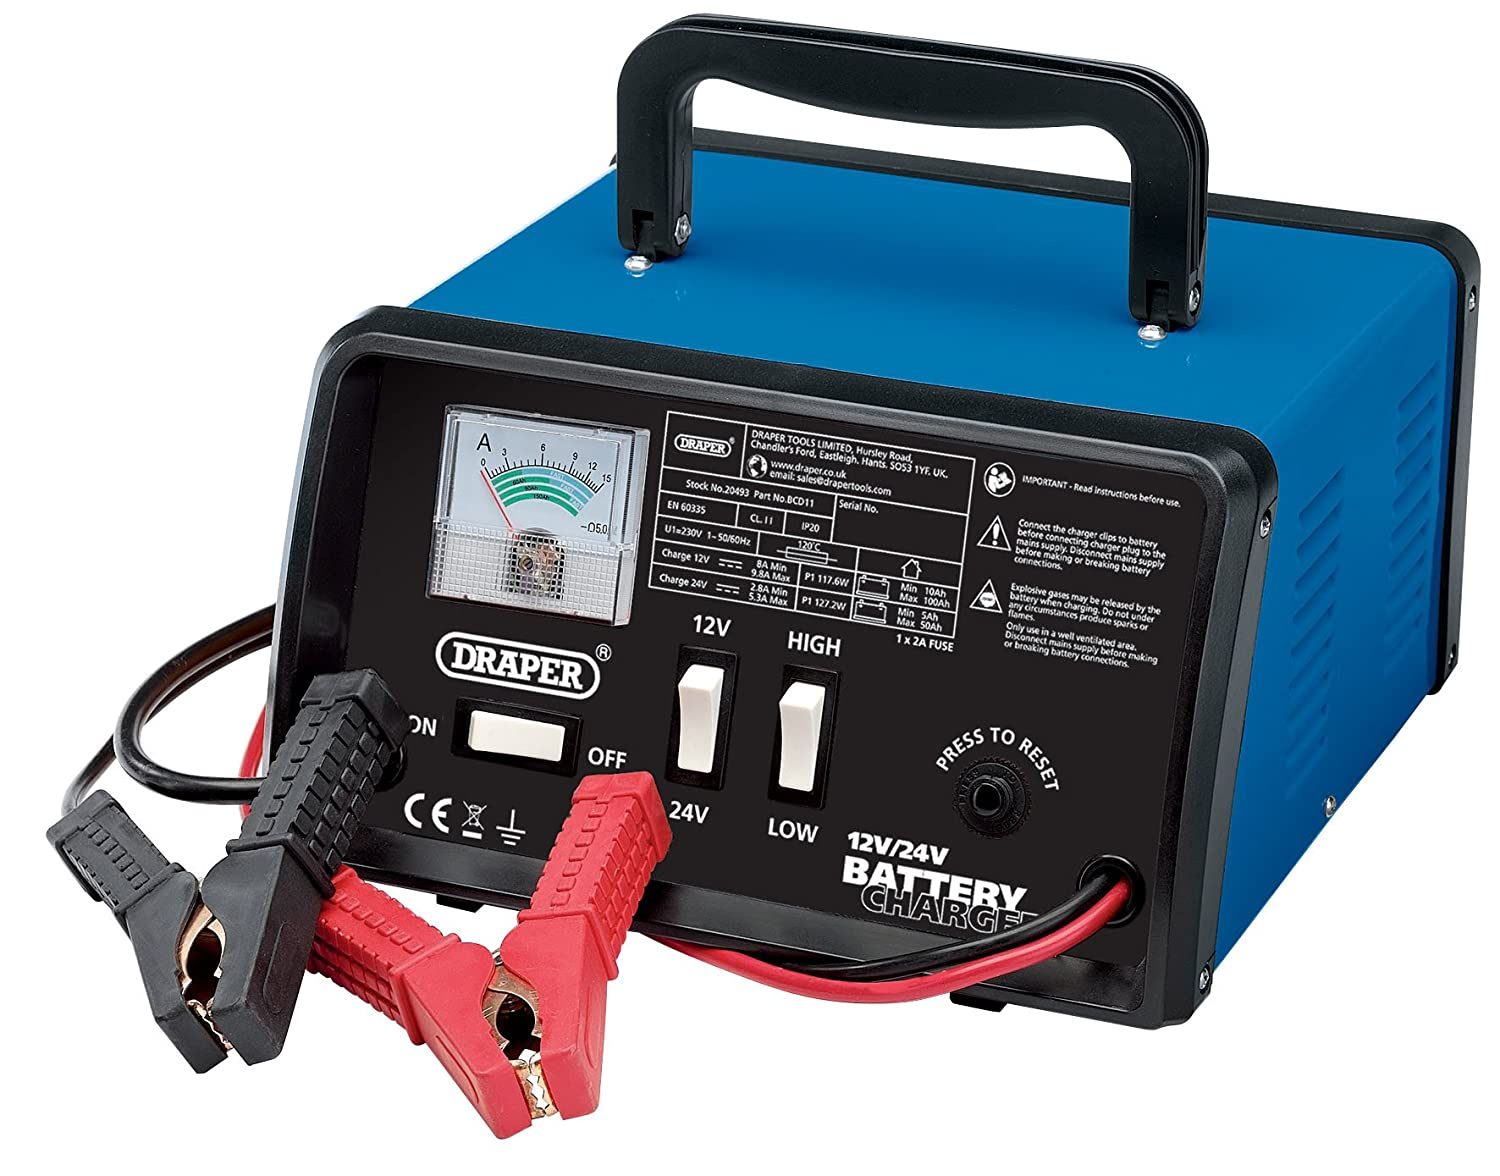 Draper BCD11 10.3 A Battery Charger, 12/24 V Draper Tools